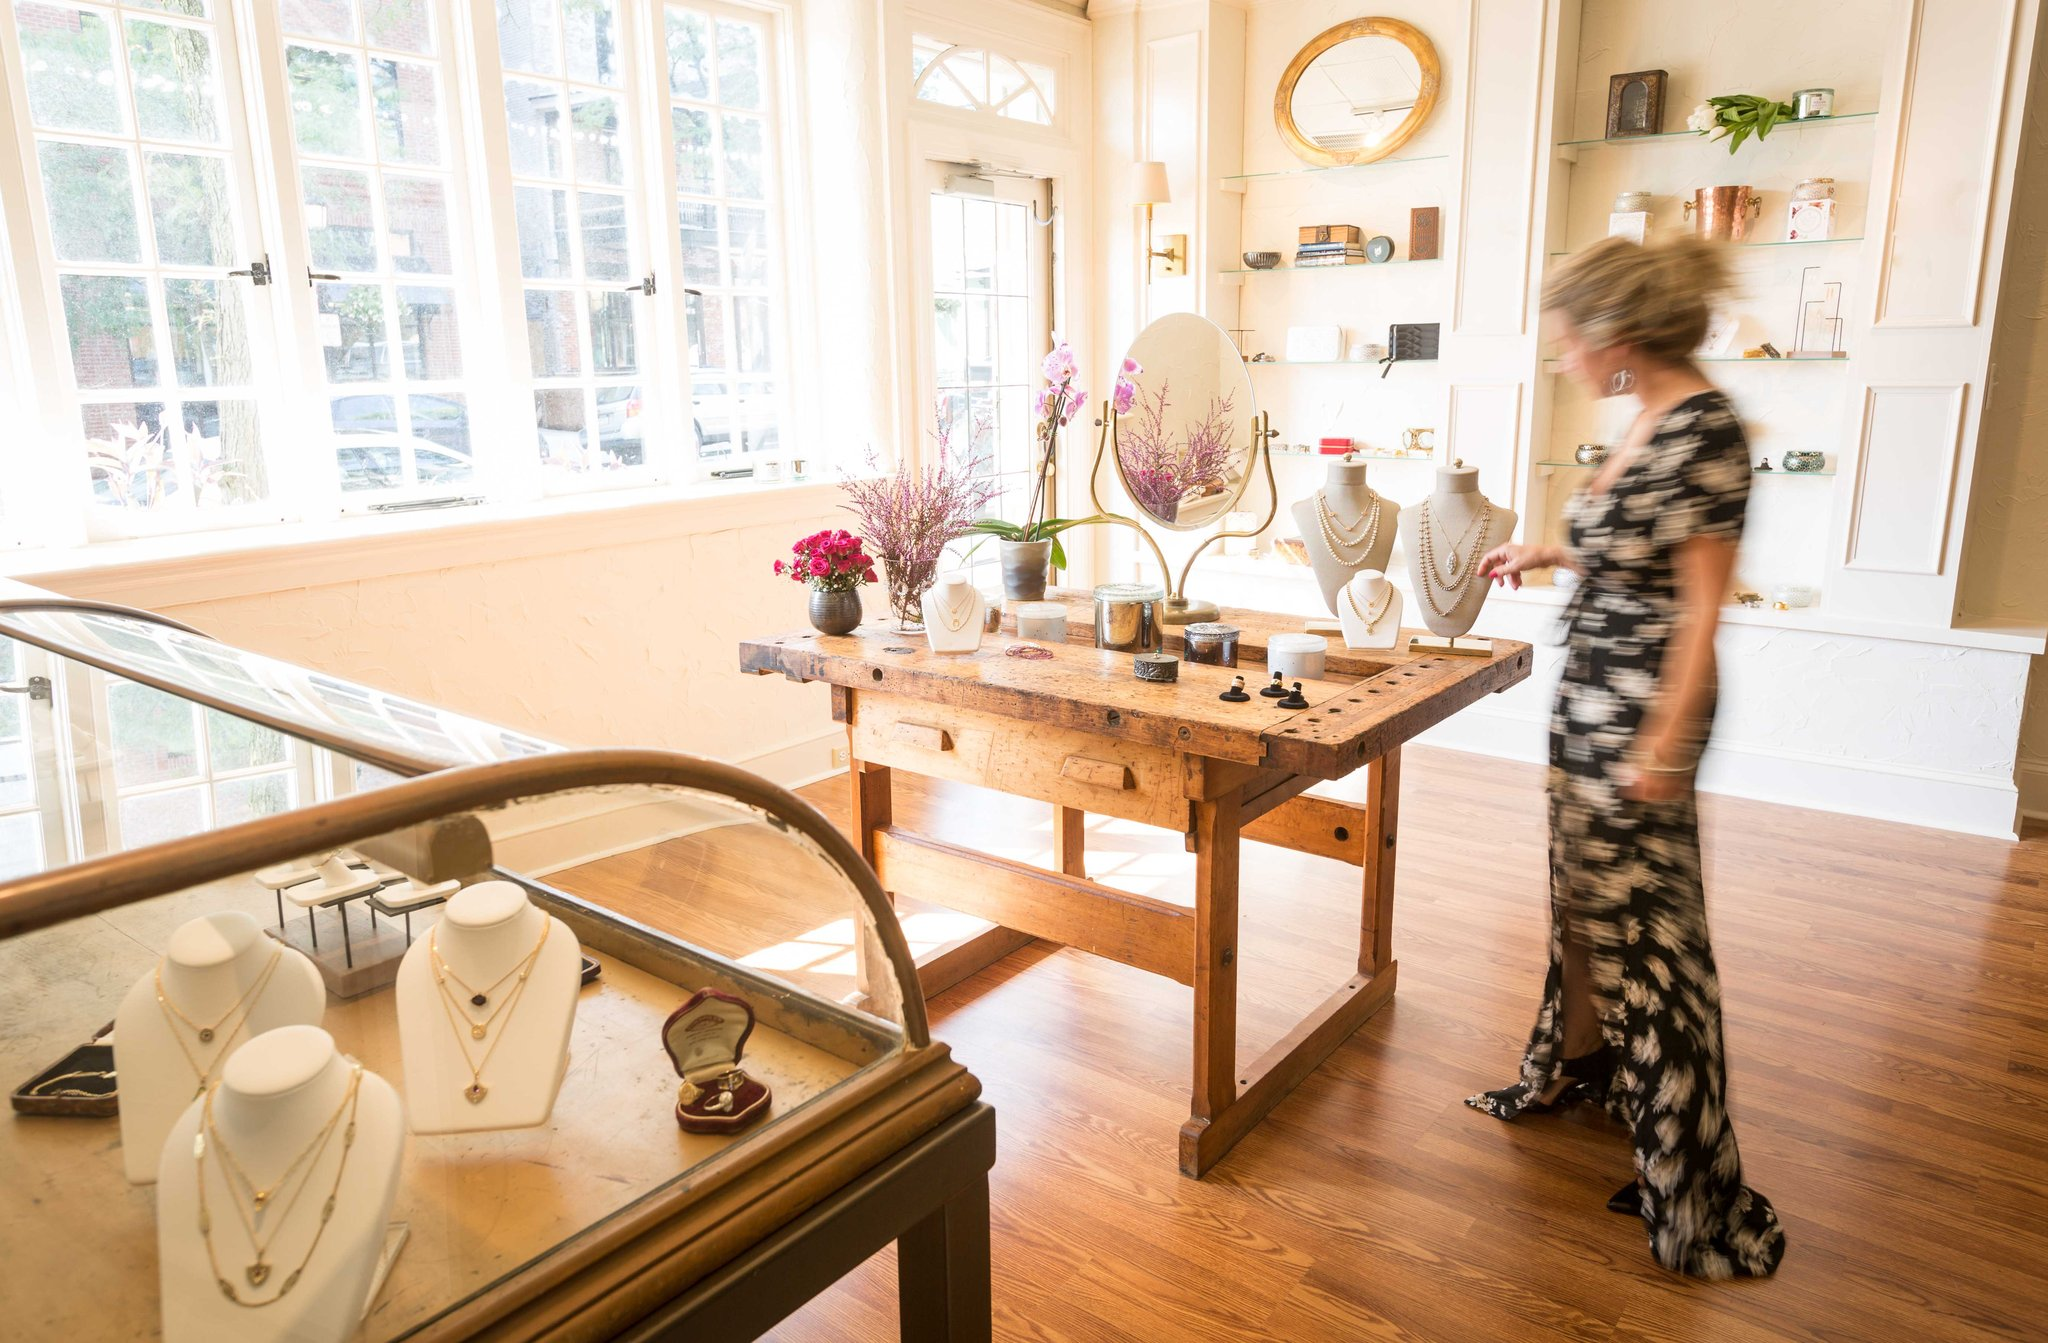 Jewelry from Kennett Square Designer Appears on Television, in the Movies